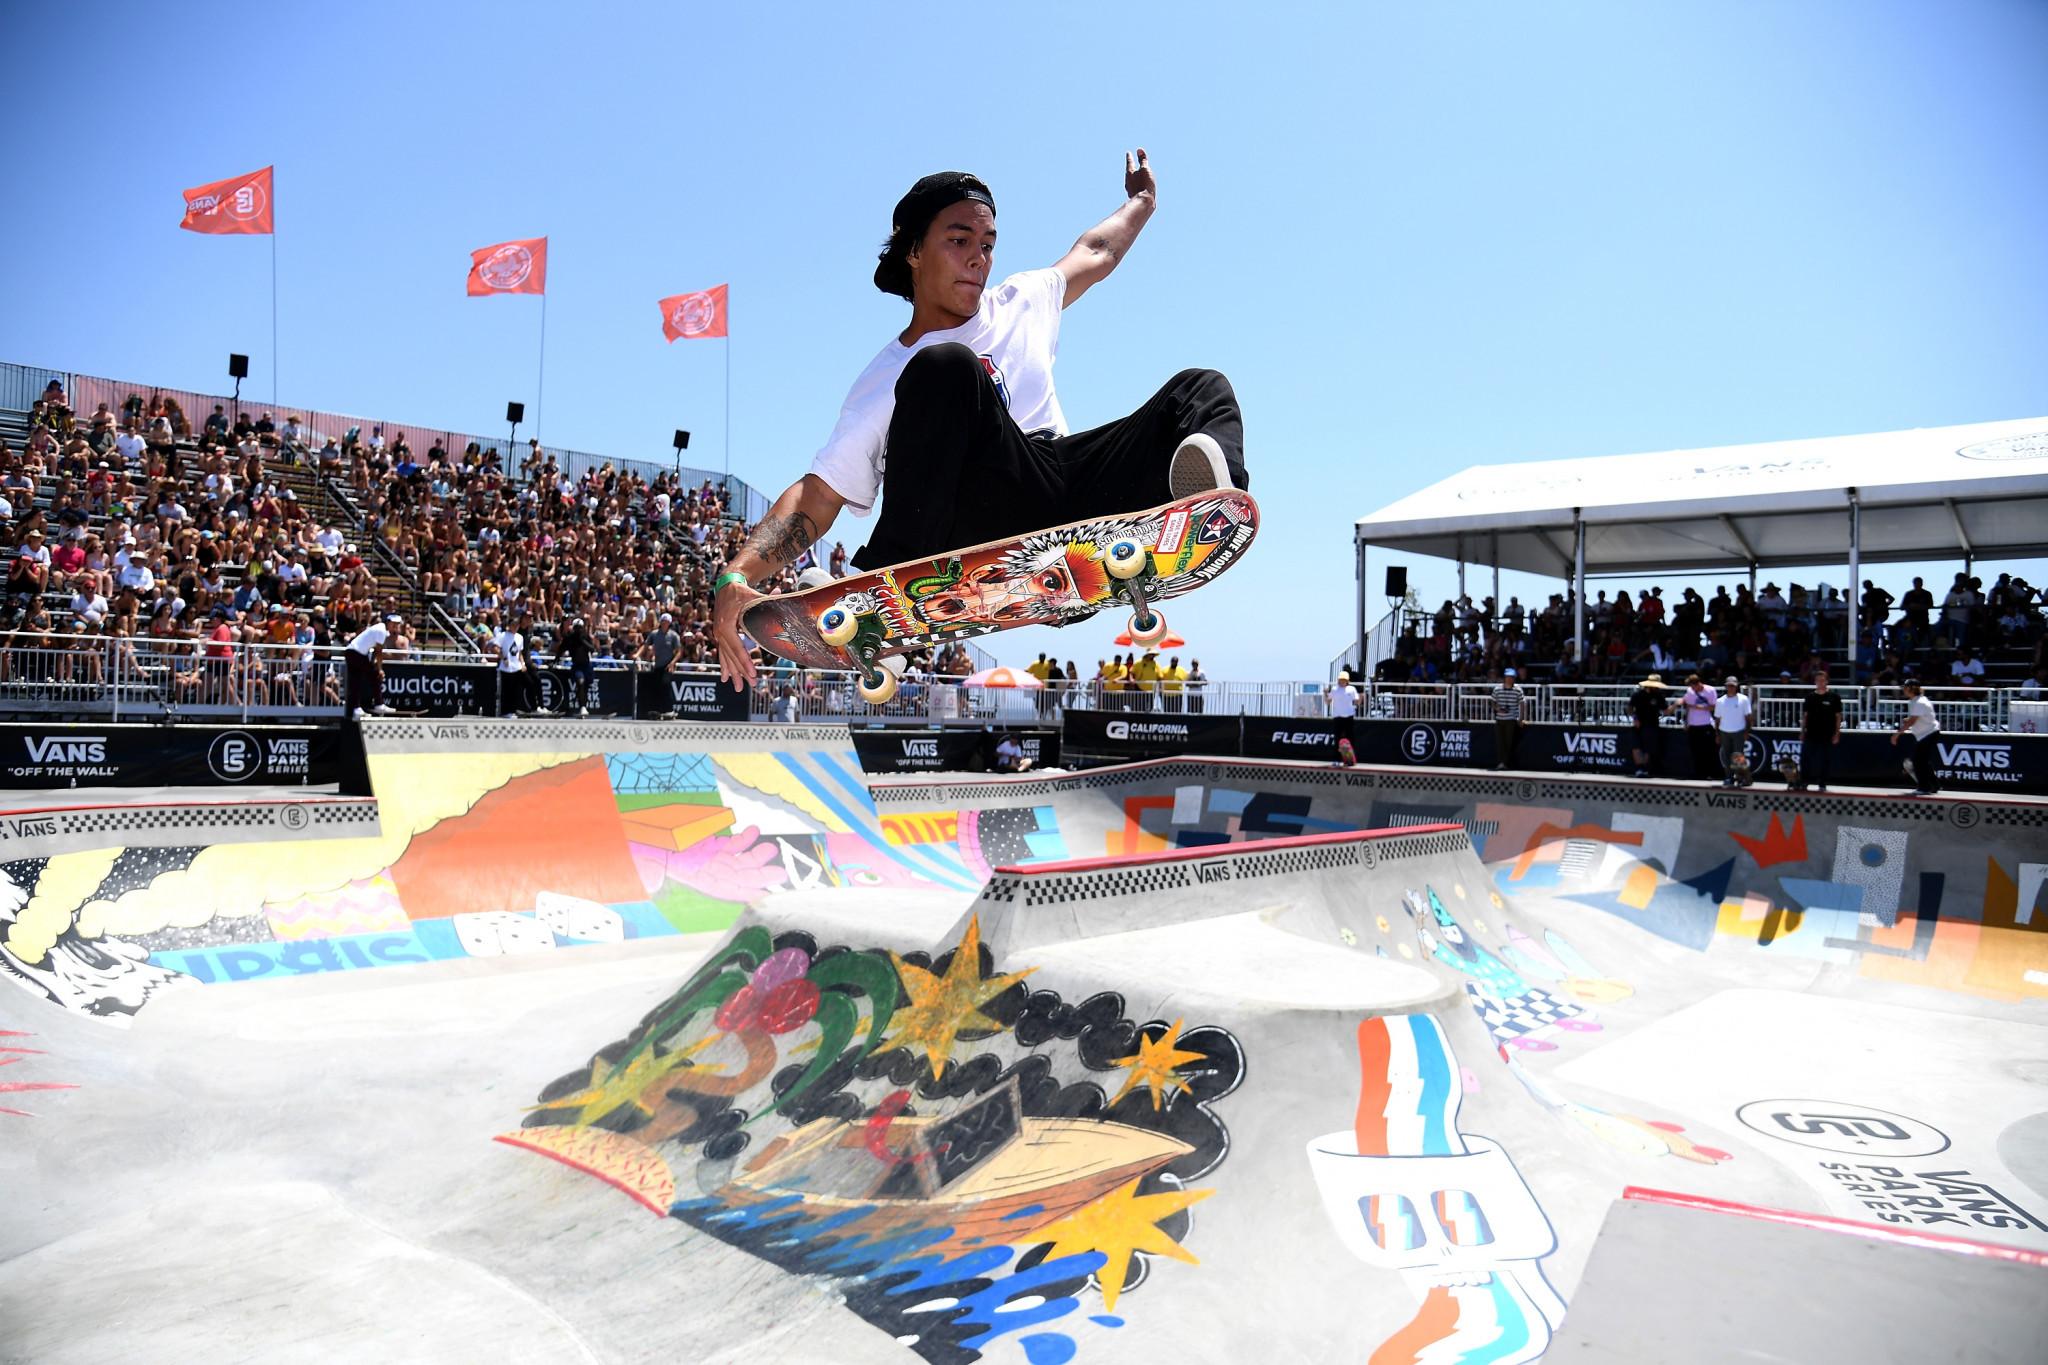 Huntington Beach has previously hosted multiple BMX and skateboarding competitions ©Getty Images